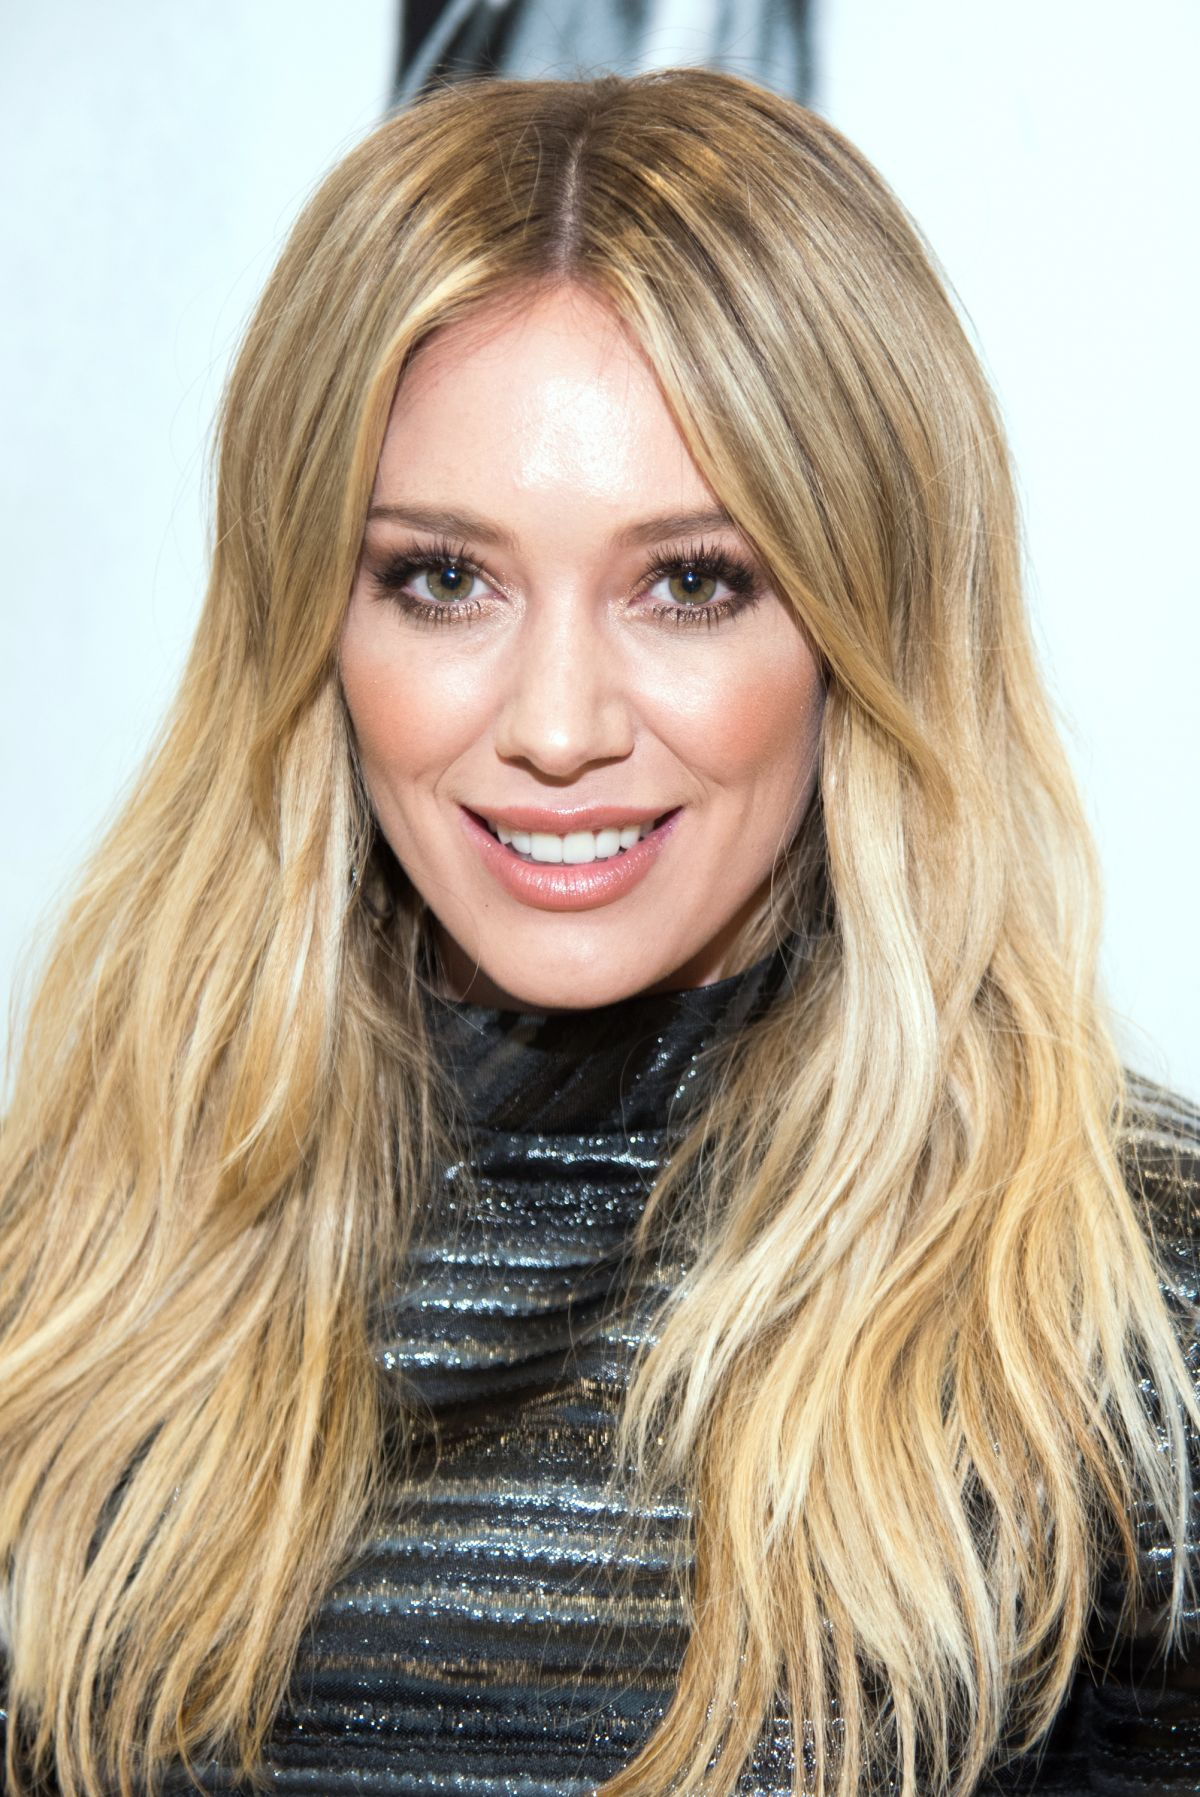 HILARY DUFF at Breathe In, Breathe Out CD Signing Event in ... Hilary Duff